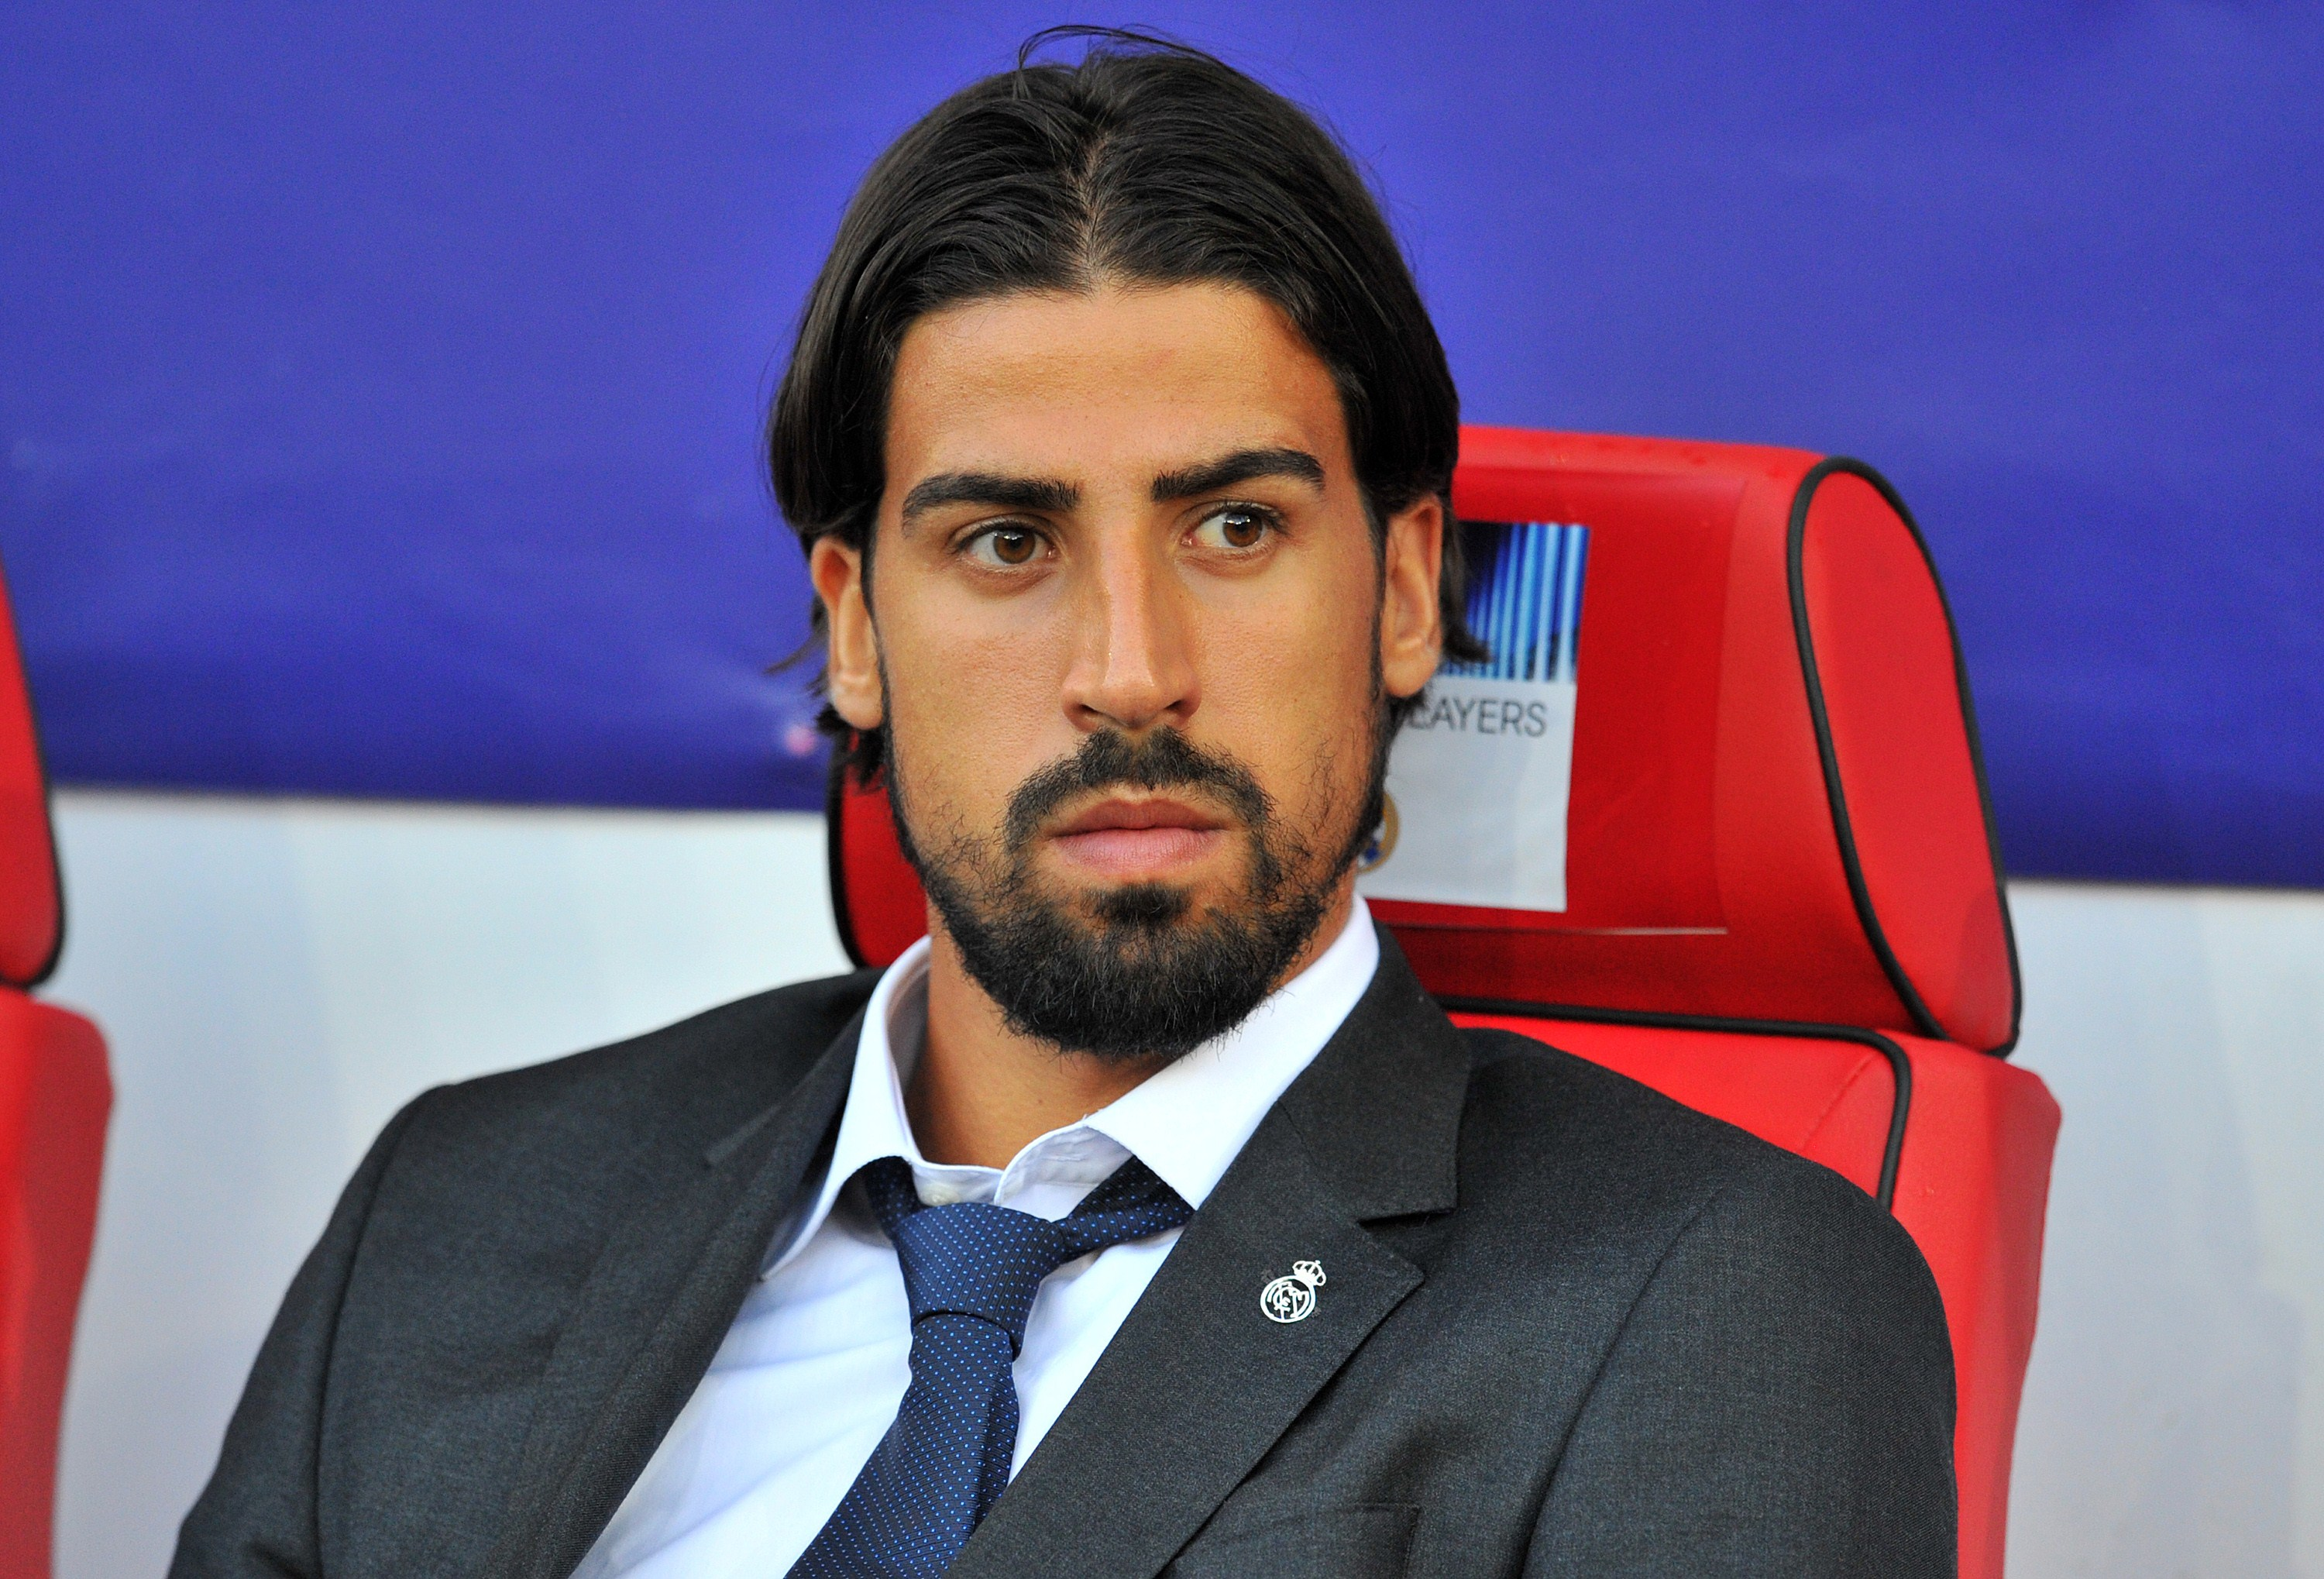 Arsenal clear to complete Sami Khedira transfer as Real Madrid confirm exit